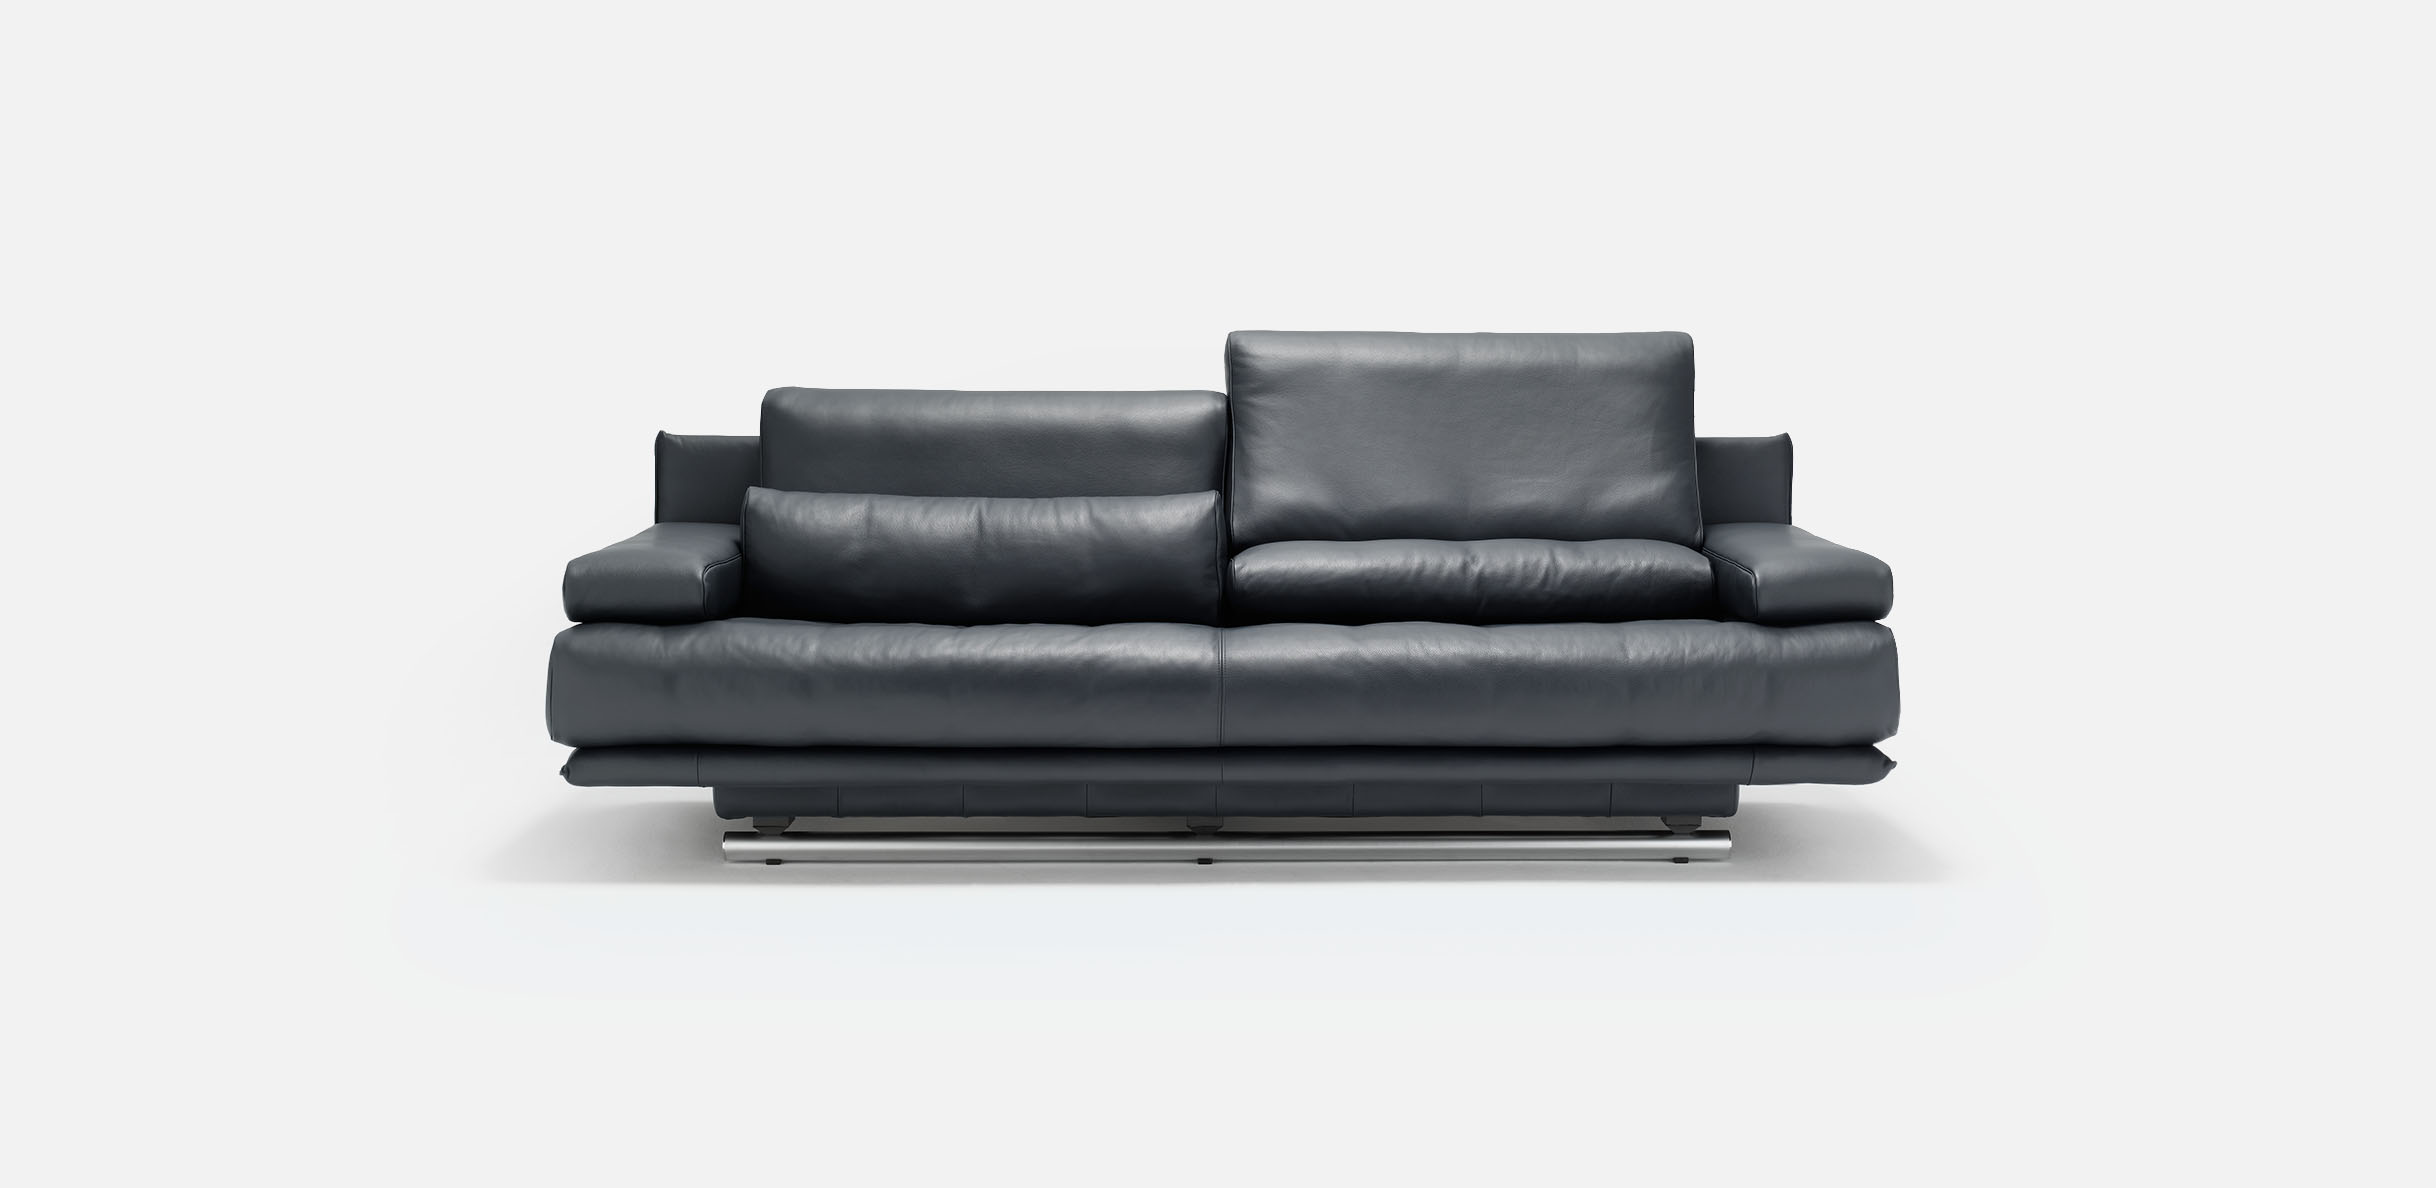 rolf benz sofas outlet die neueste innovation der. Black Bedroom Furniture Sets. Home Design Ideas